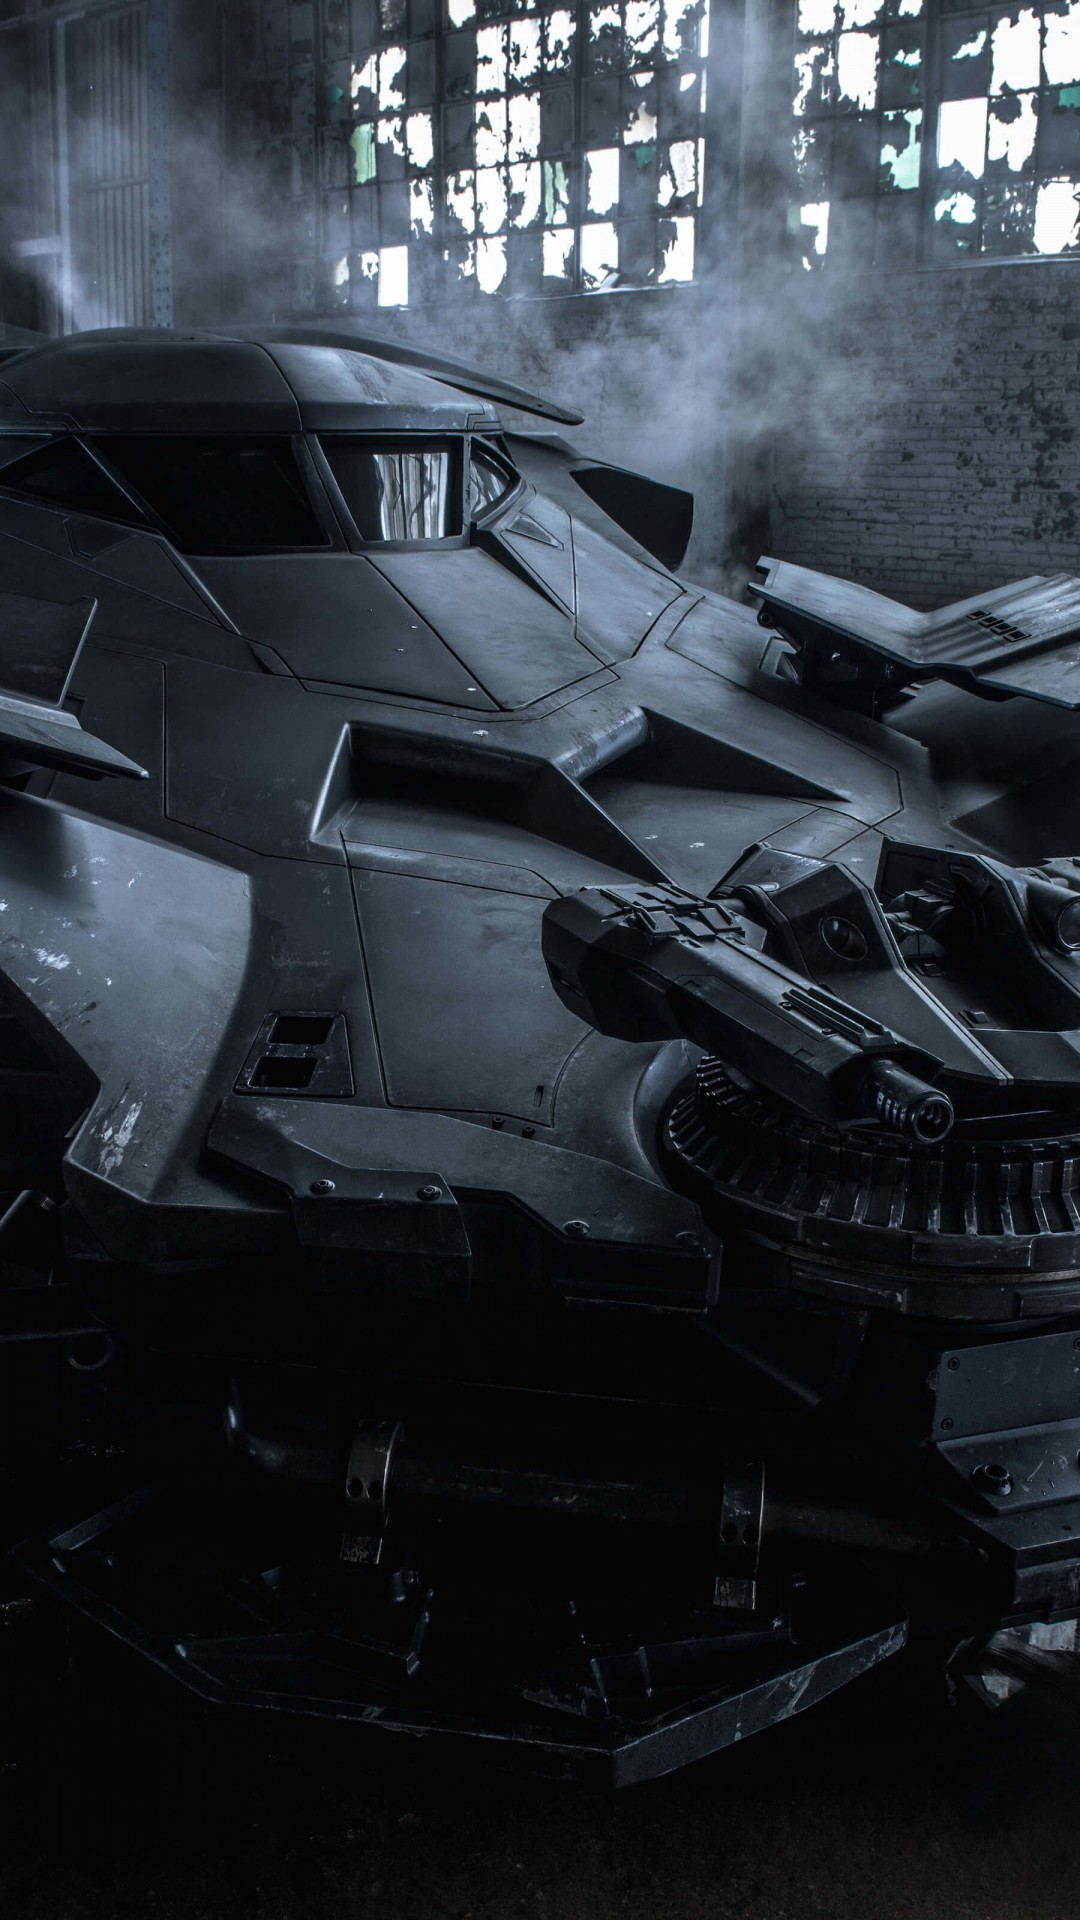 The Batman v Superman Batmobile Wallpaper for Google Nexus 5X